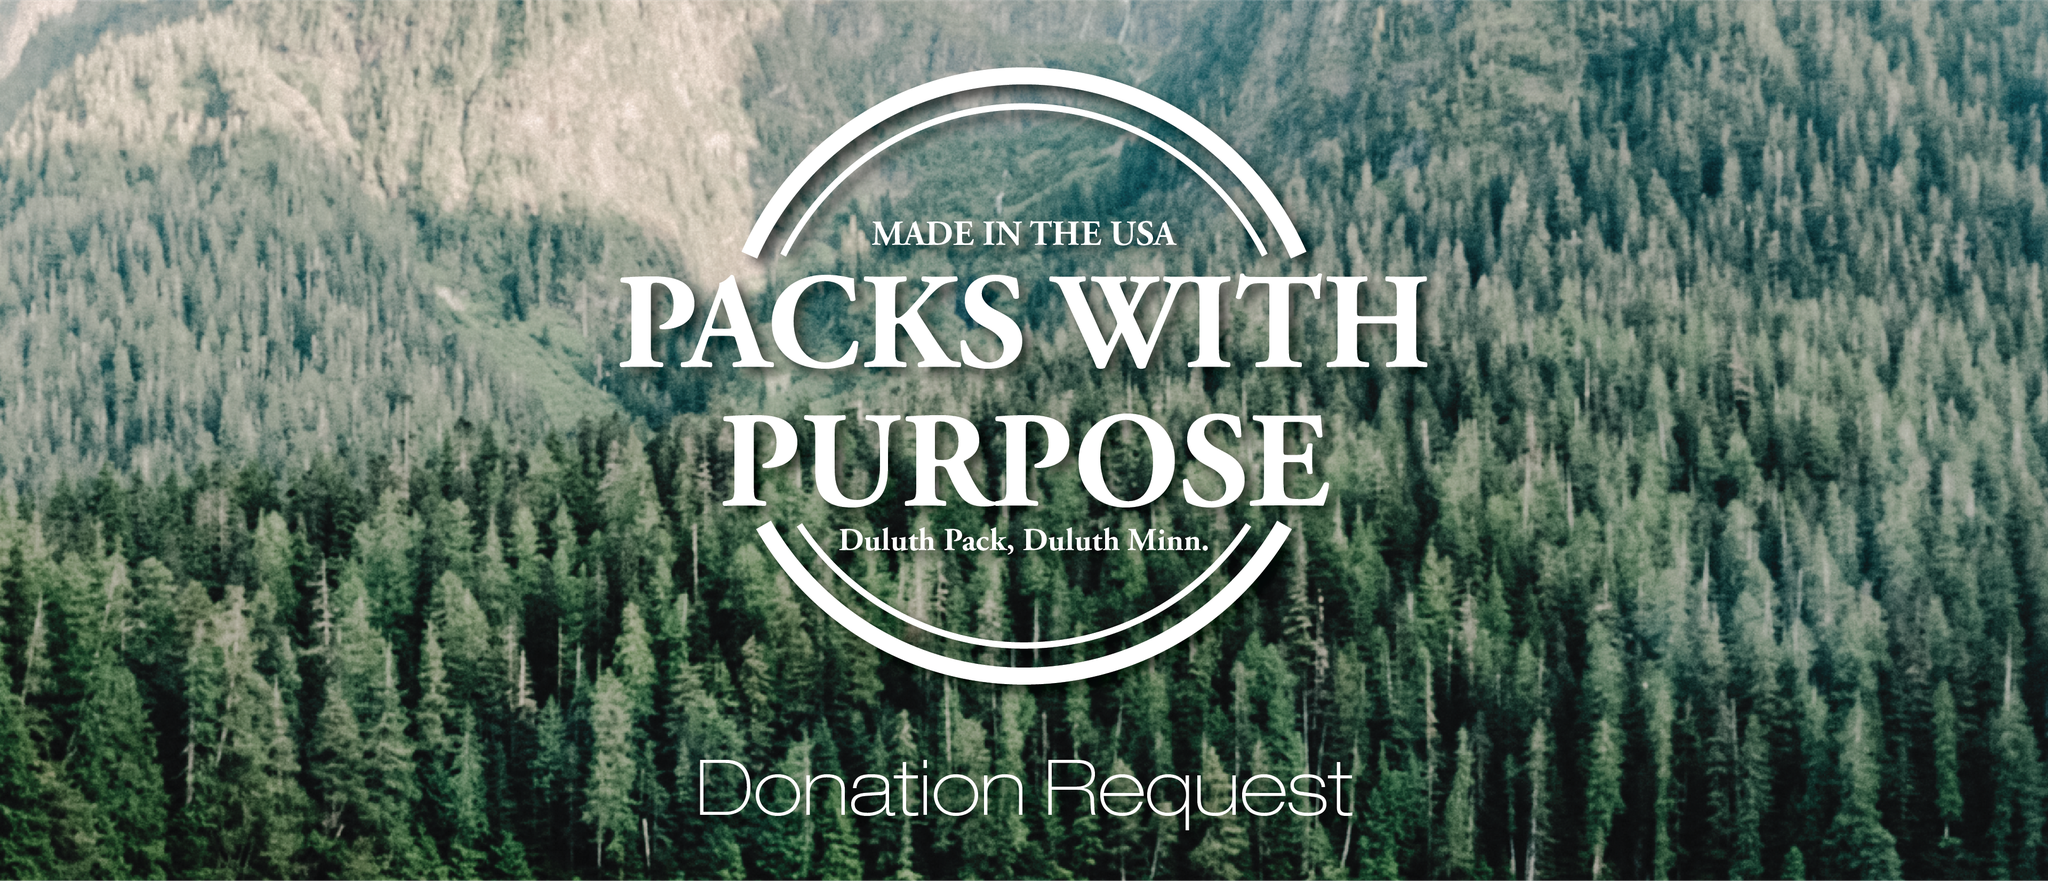 Packs With Purpose Donation Request